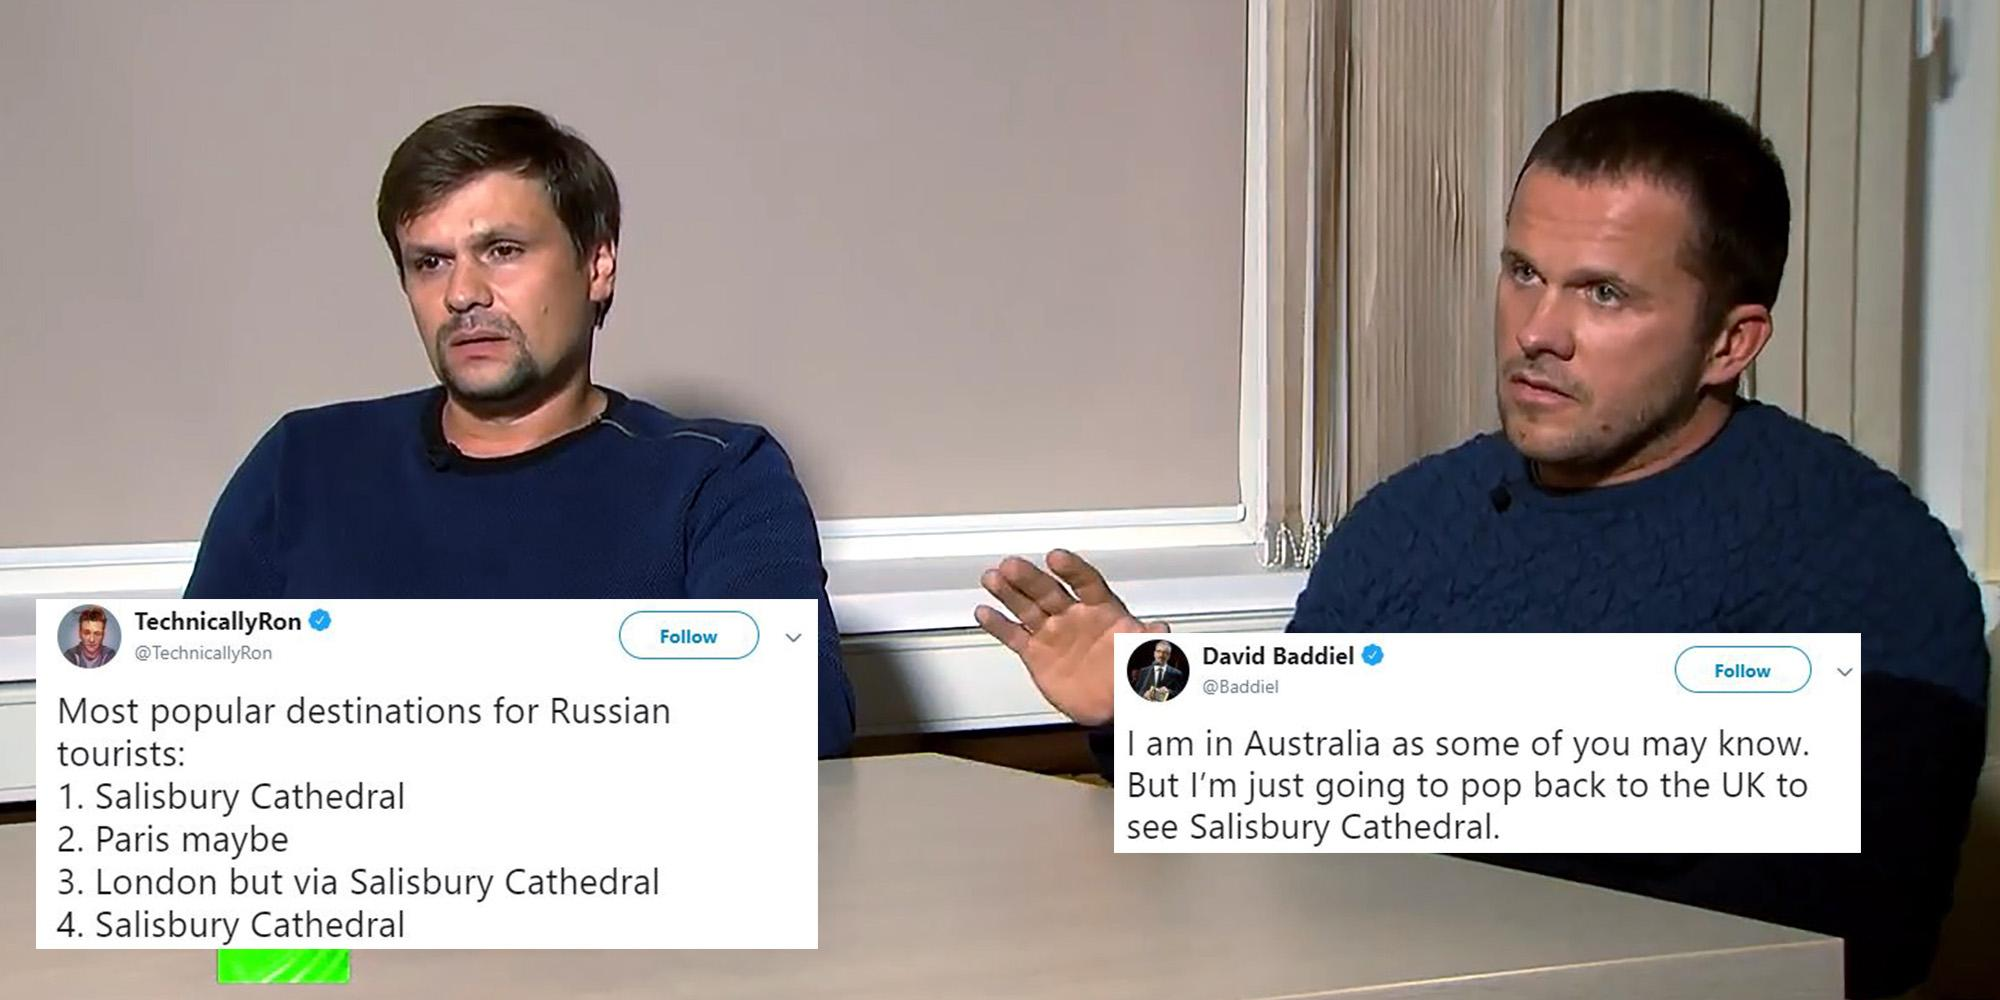 The Russian Suspects Who Visited Salisbury Cathedral Are Being Mercilessly